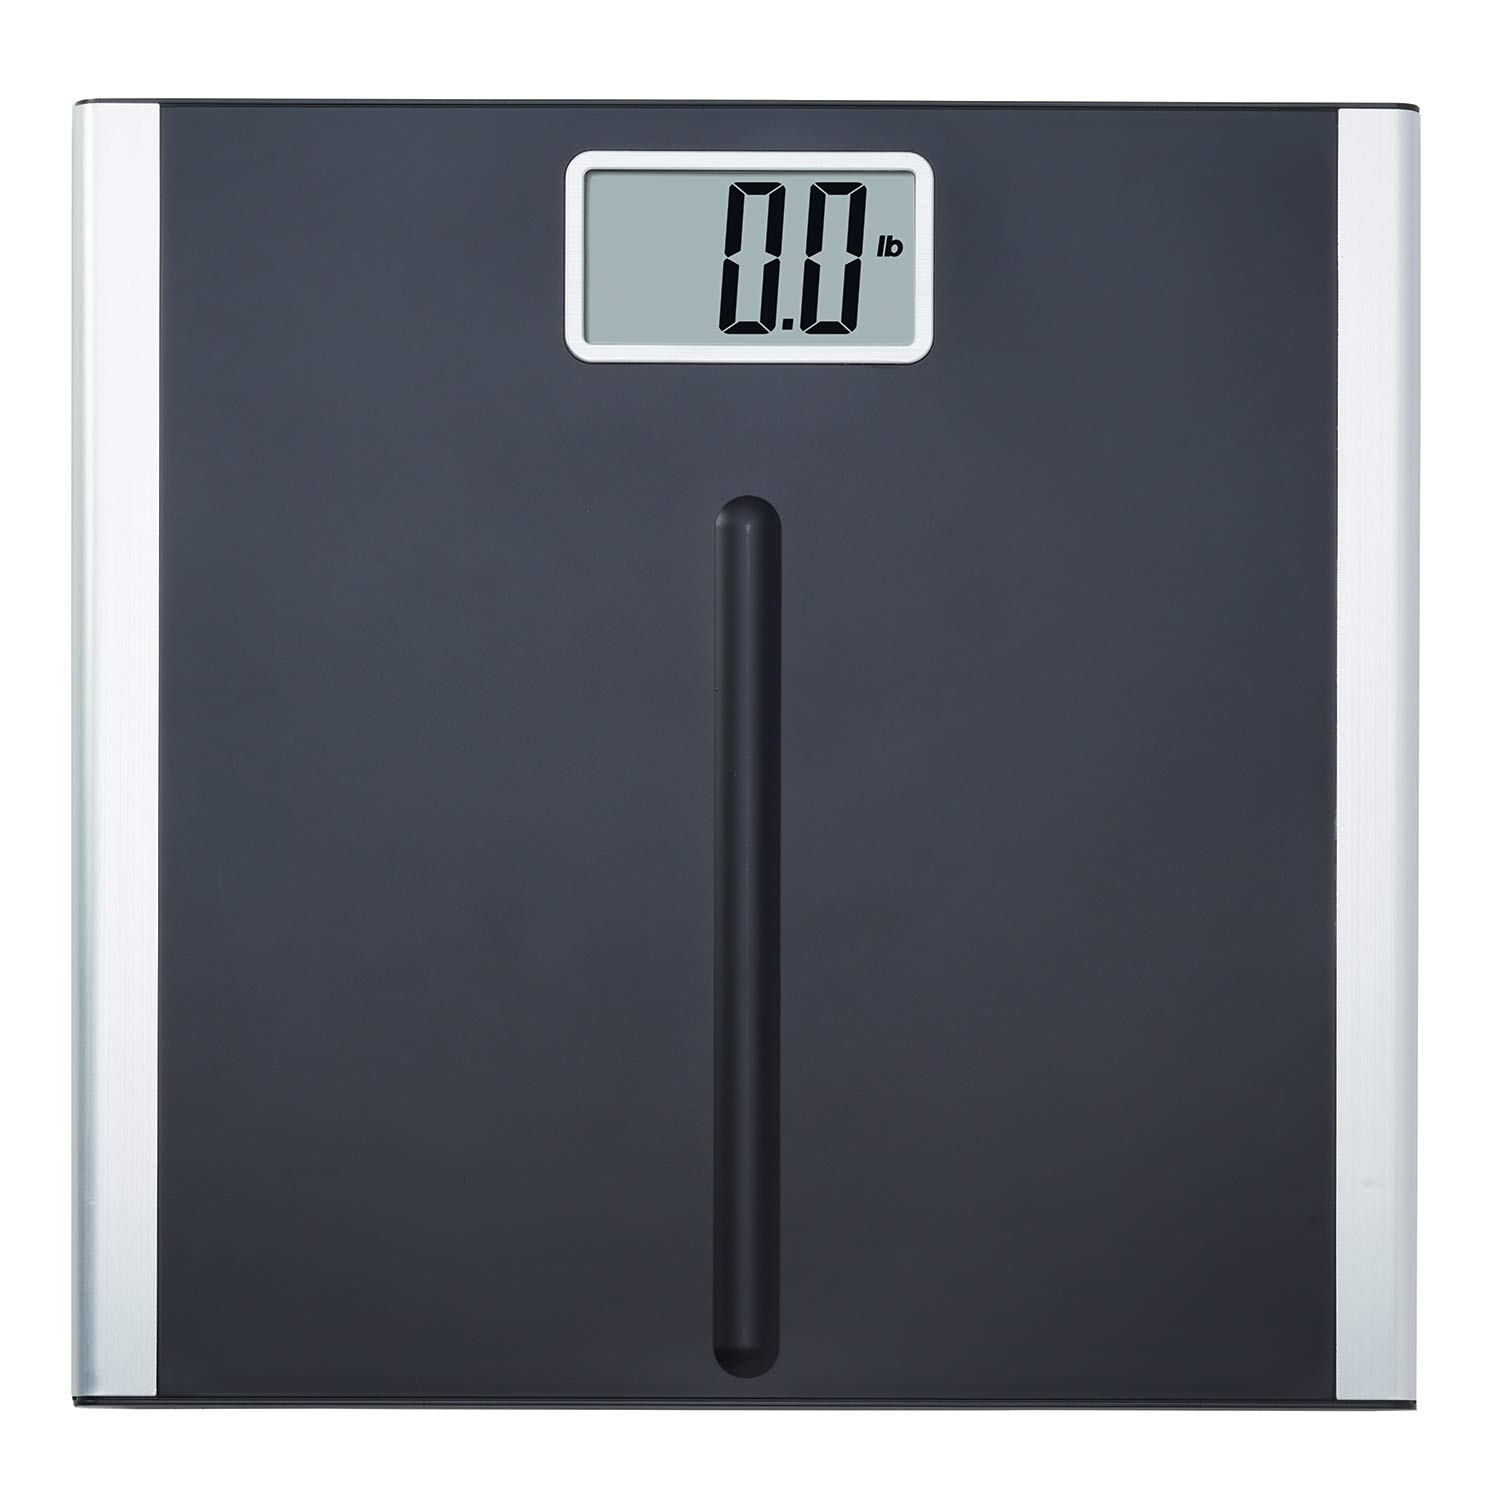 EatSmart Precision Premium Digital Bathroom Scale with 3.5'' LCD and ''Step-On'' Technology by EatSmart